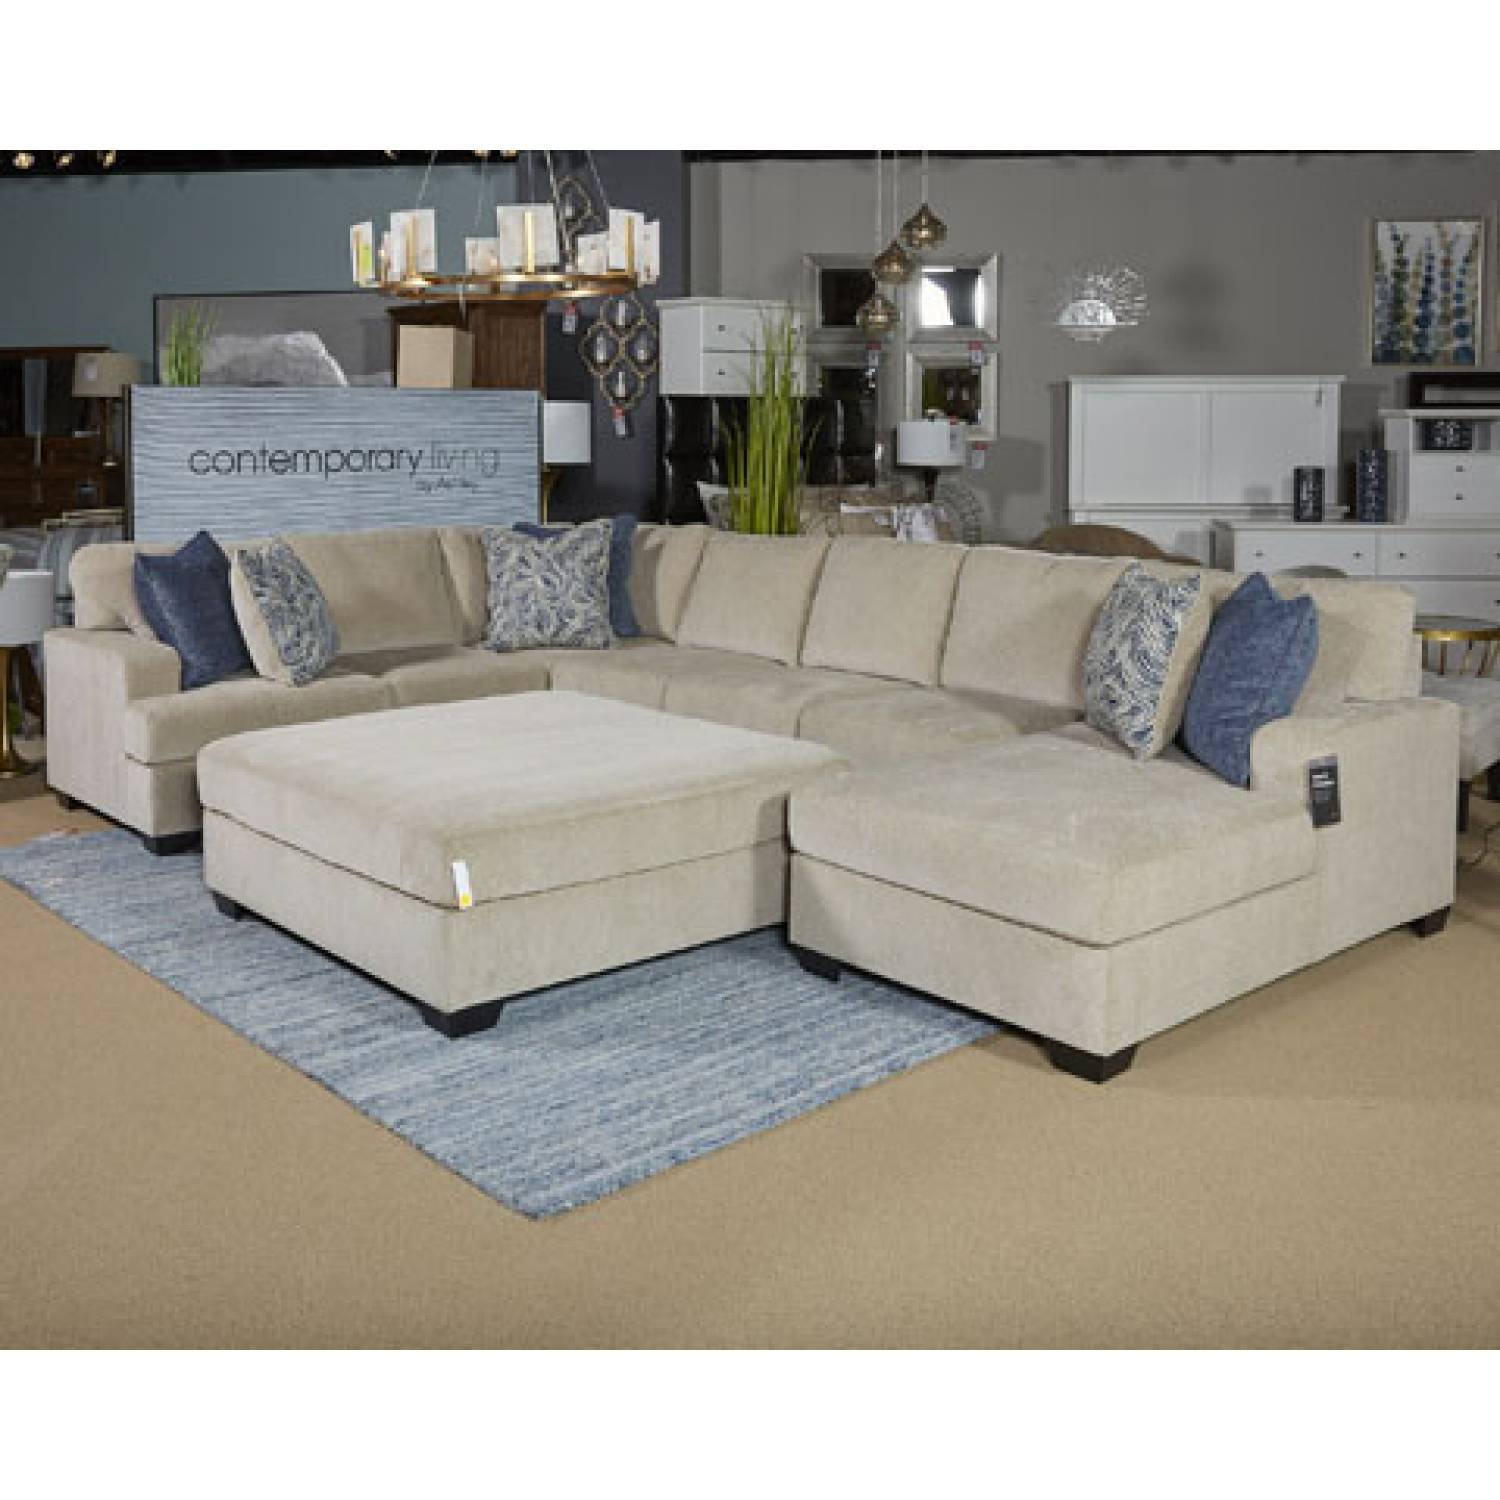 sectional sofa for sale small with removable covers 61500 enola oversized accent ottoman